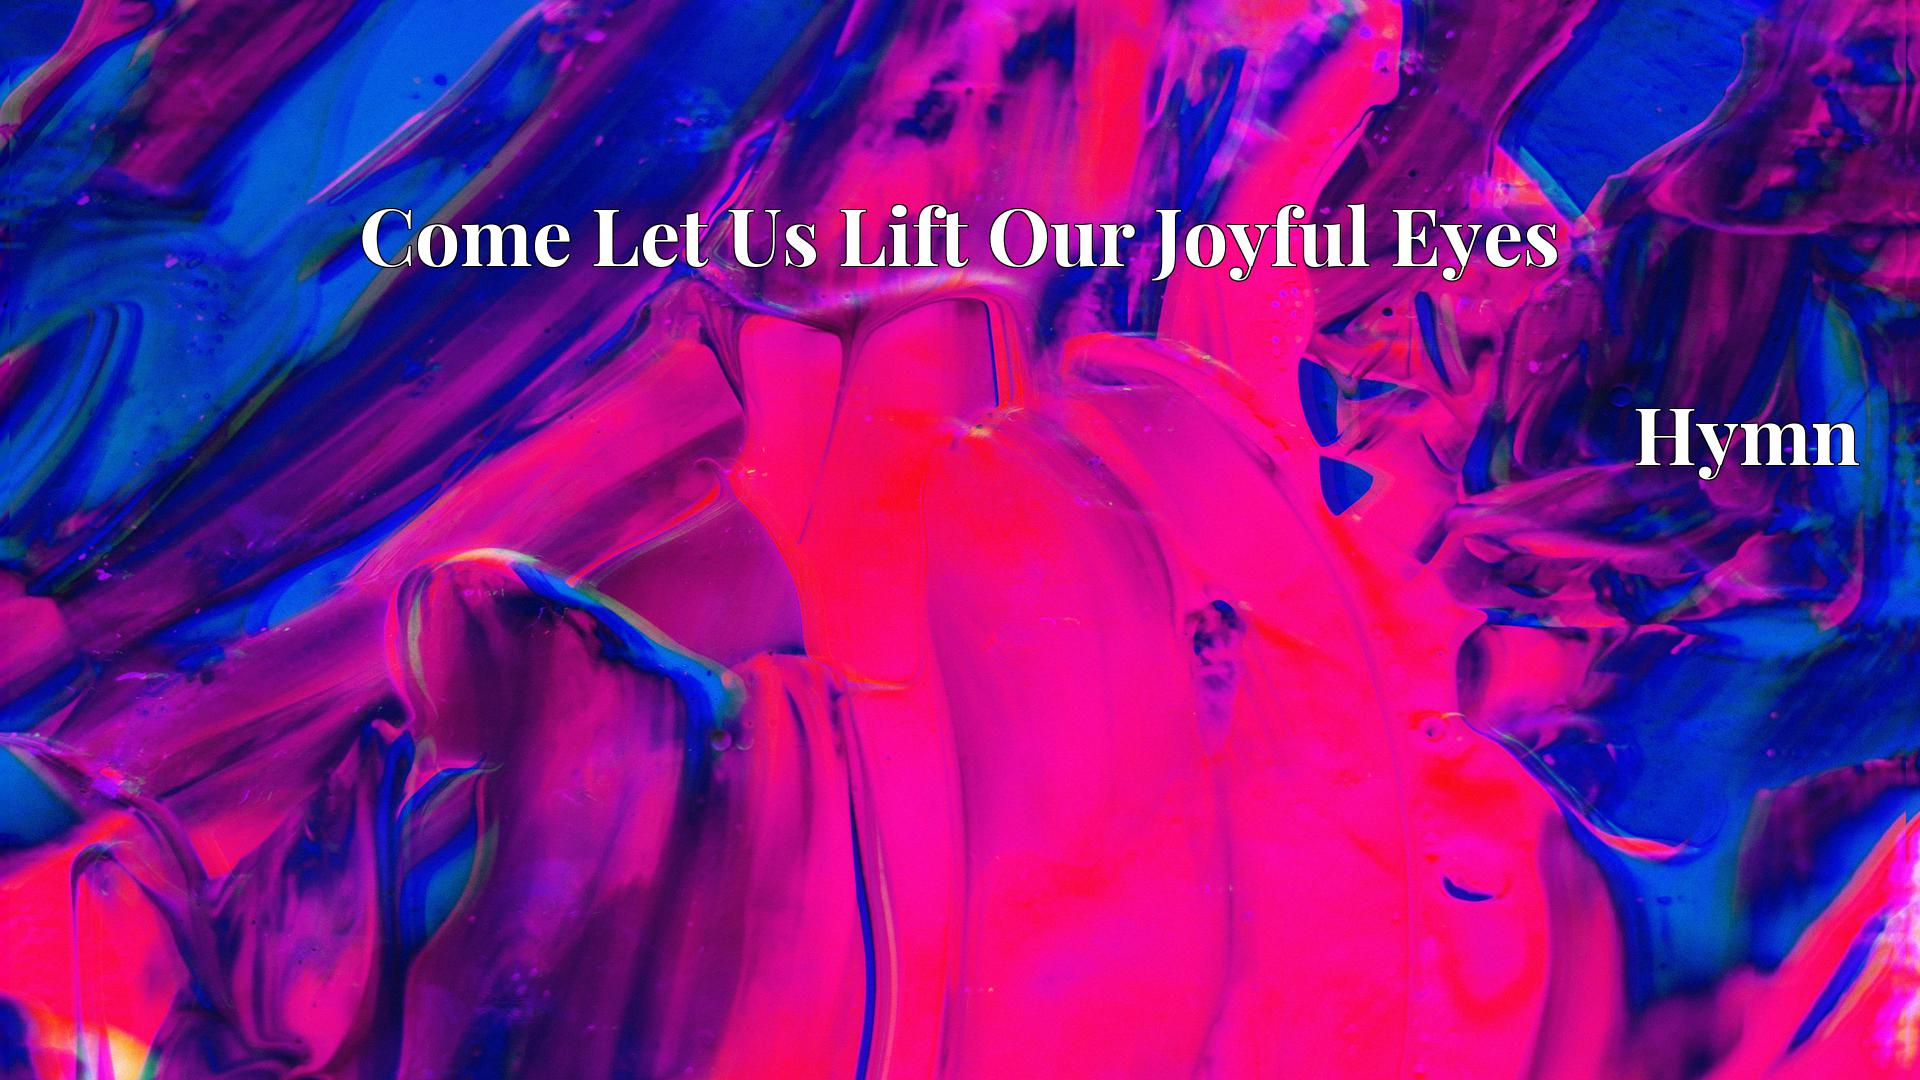 Come Let Us Lift Our Joyful Eyes - Hymn